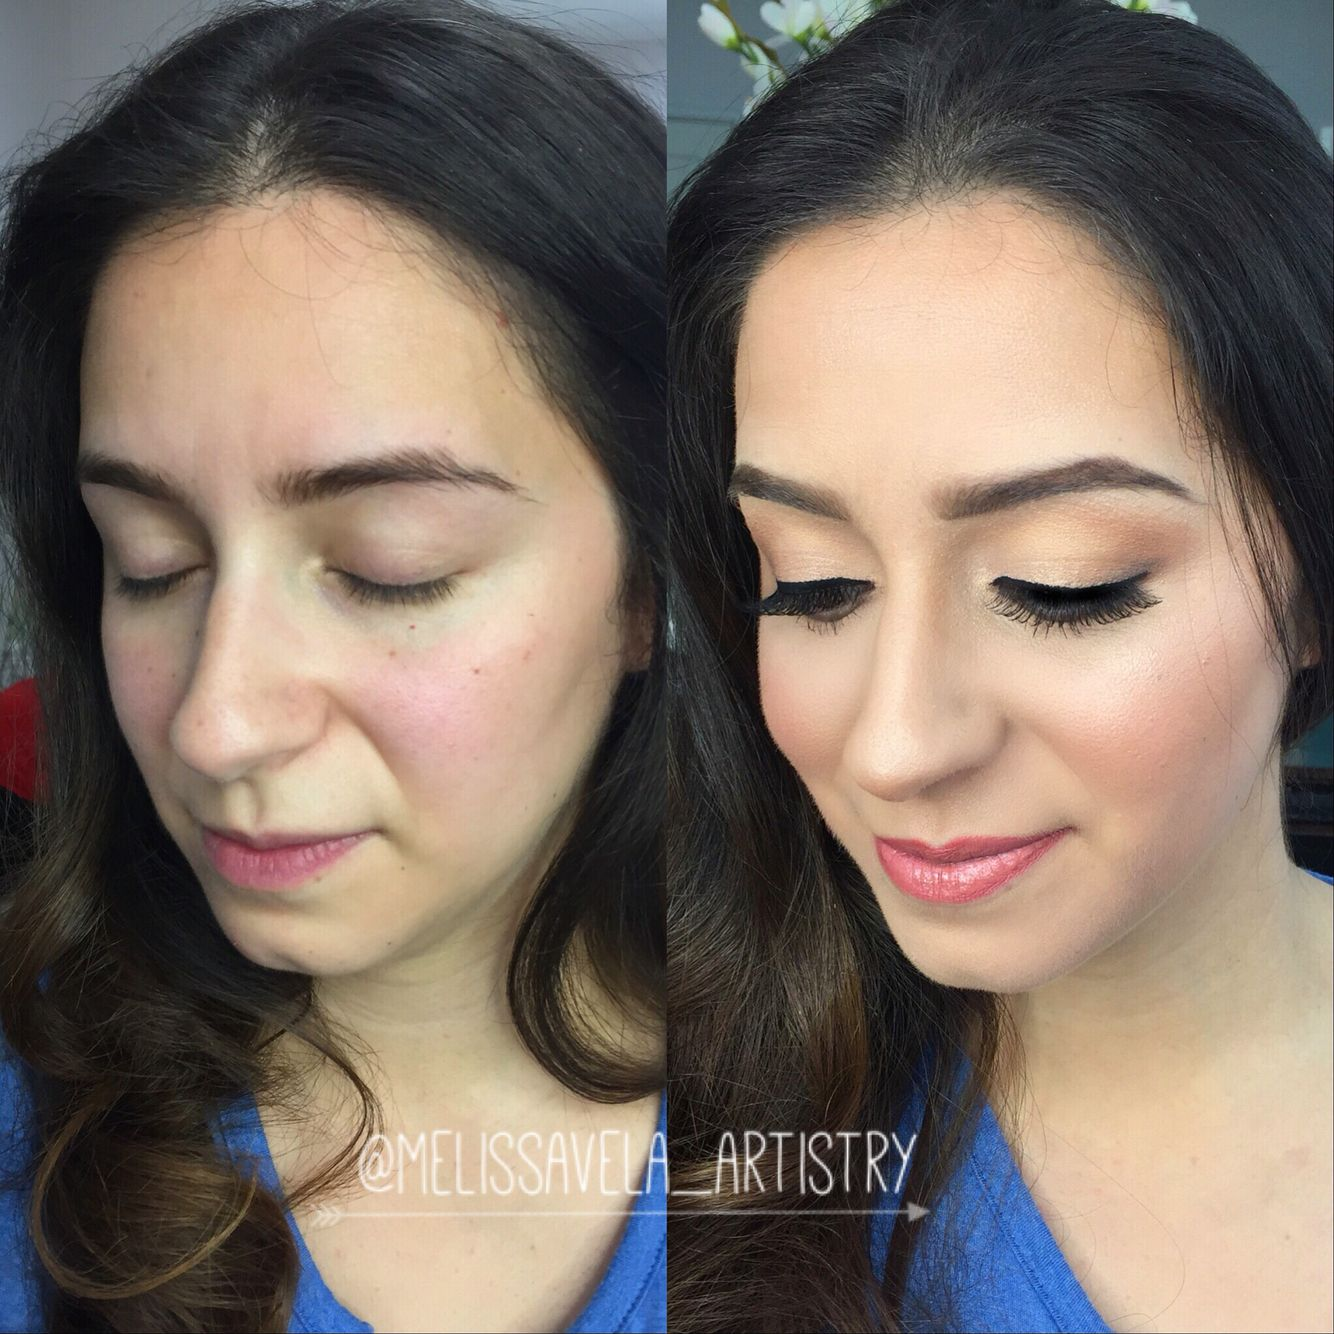 airbrushed before and after makeup #airbrush #makeup